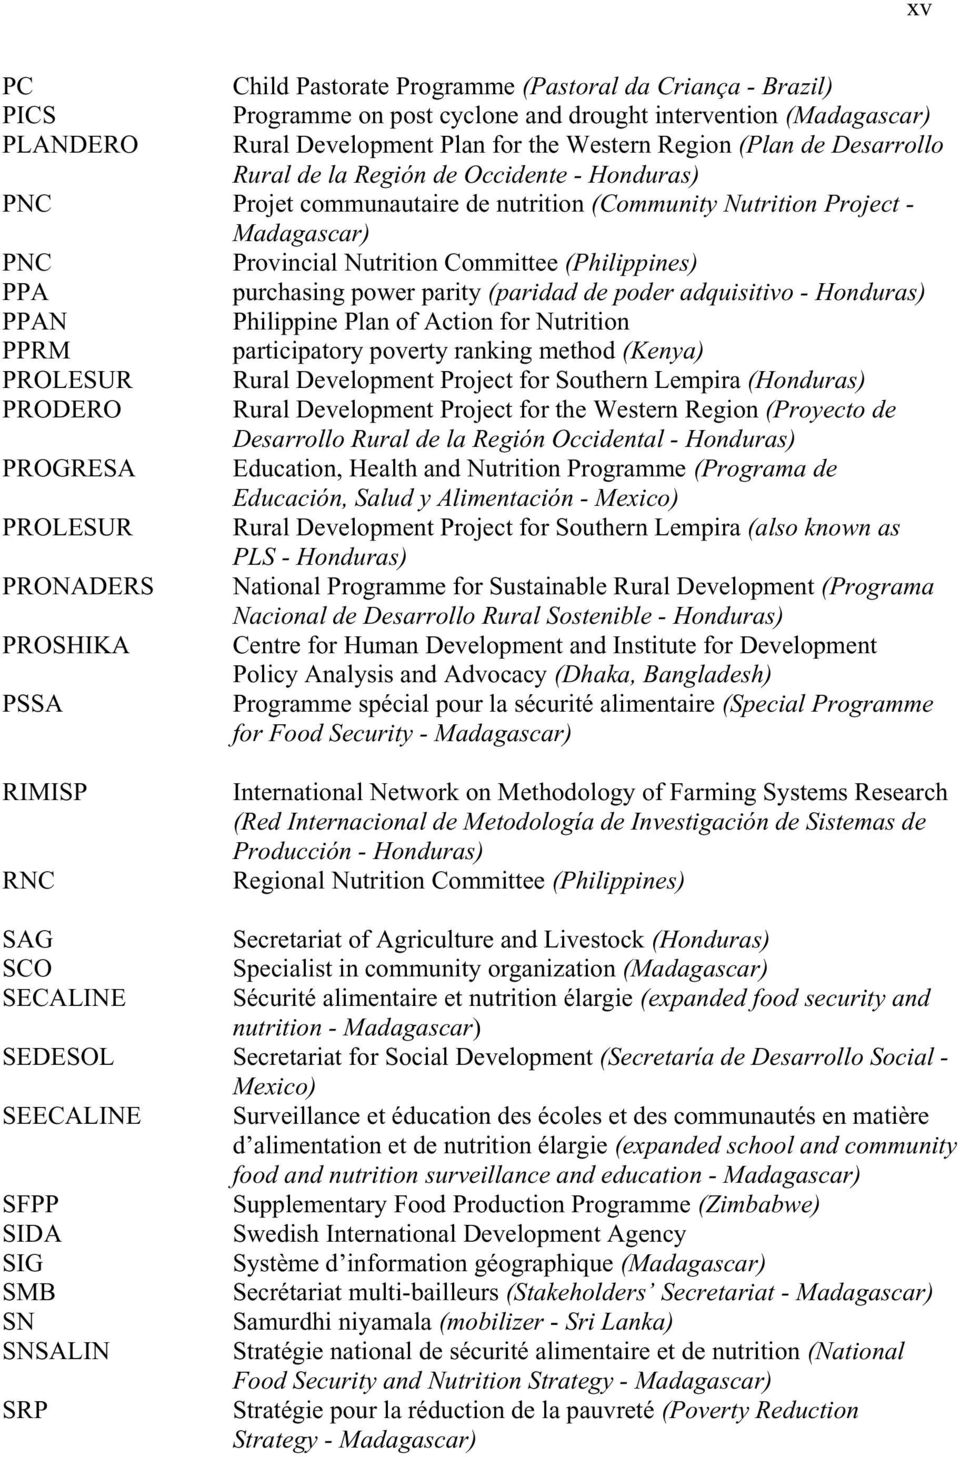 power parity (paridad de poder adquisitivo - Honduras) PPAN Philippine Plan of Action for Nutrition PPRM participatory poverty ranking method (Kenya) PROLESUR Rural Development Project for Southern